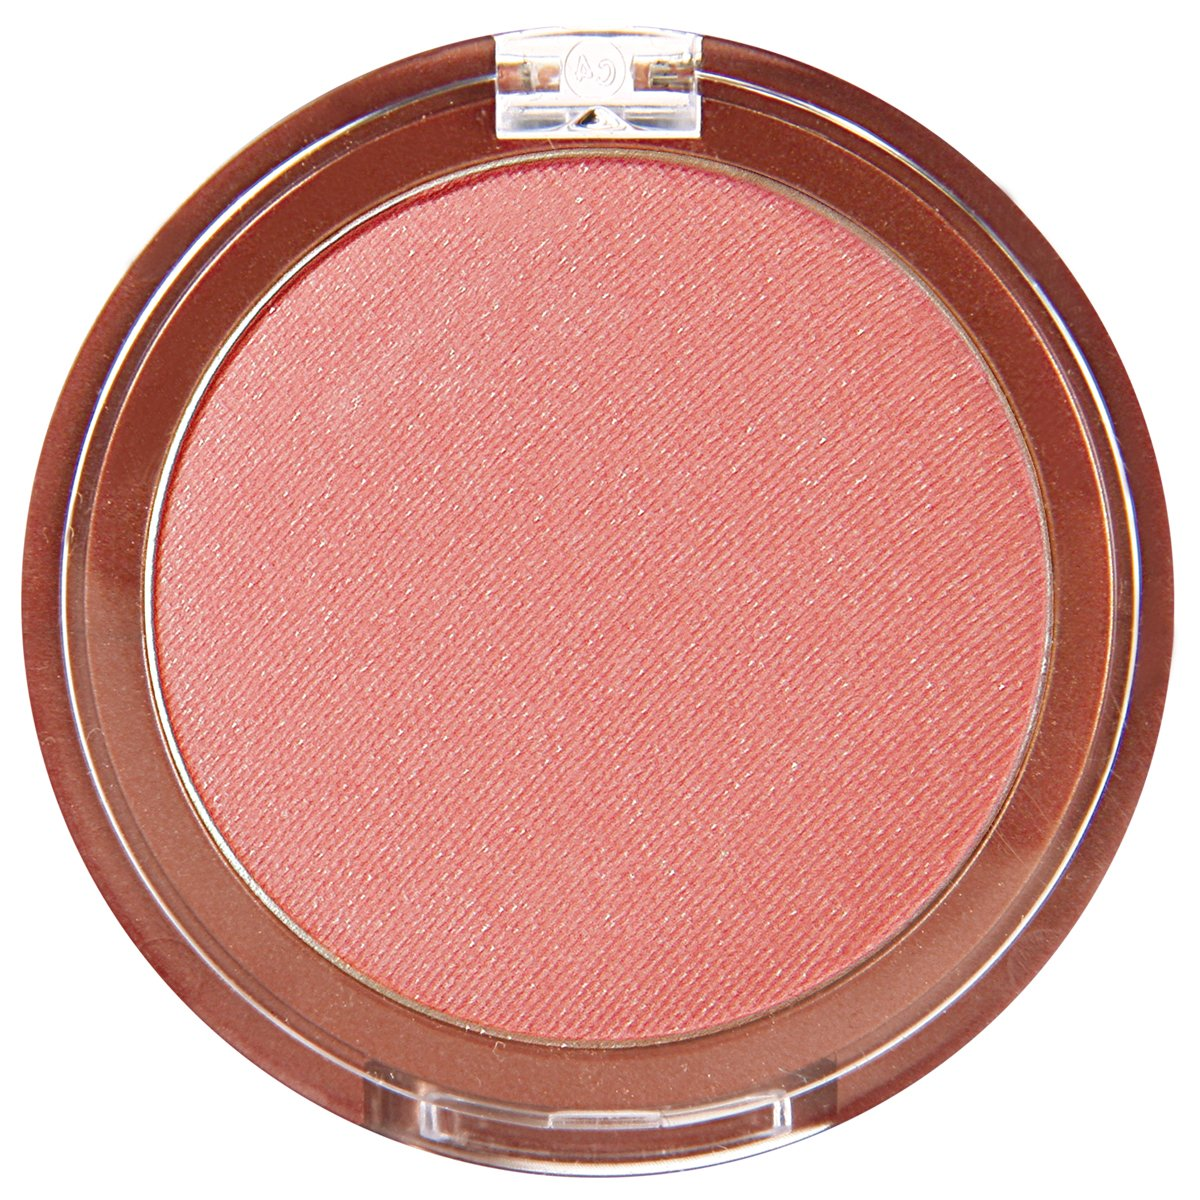 MINERAL FUSION Makeup blush flashy by mineral fusion, 0.10 oz, 0.10 Ounce